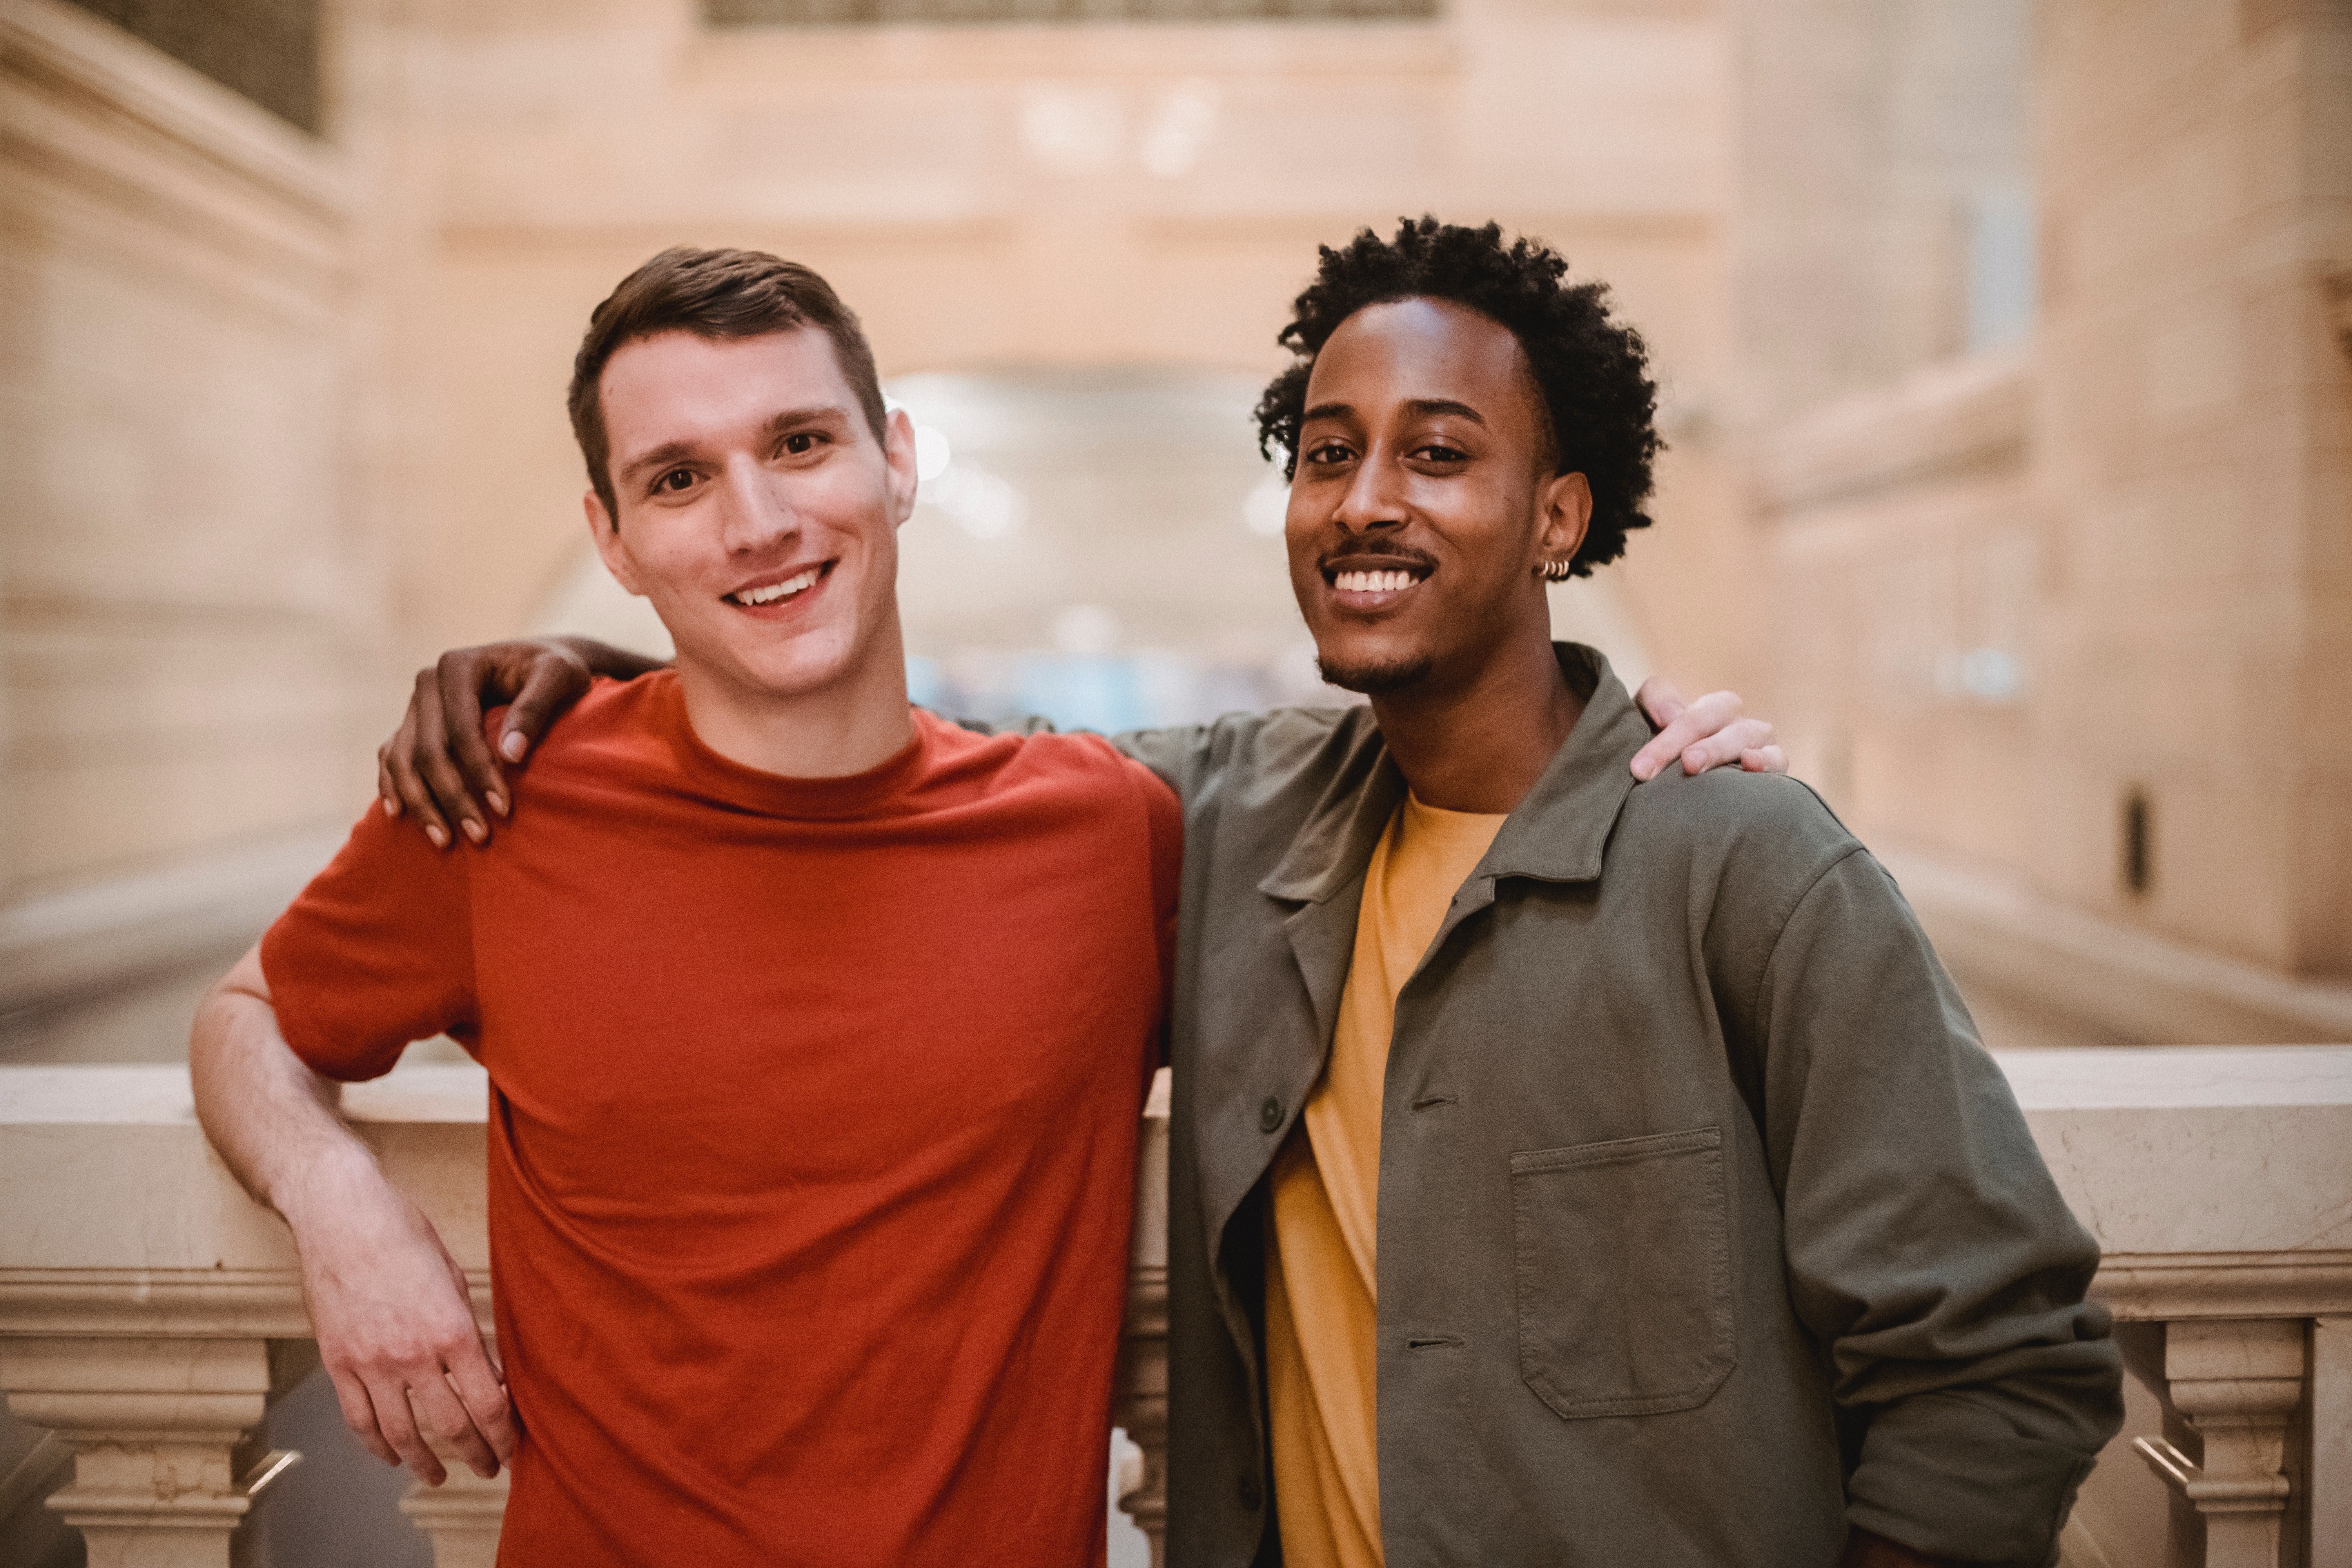 Two smiling male friends with their arms around each other | Photo: Pexels